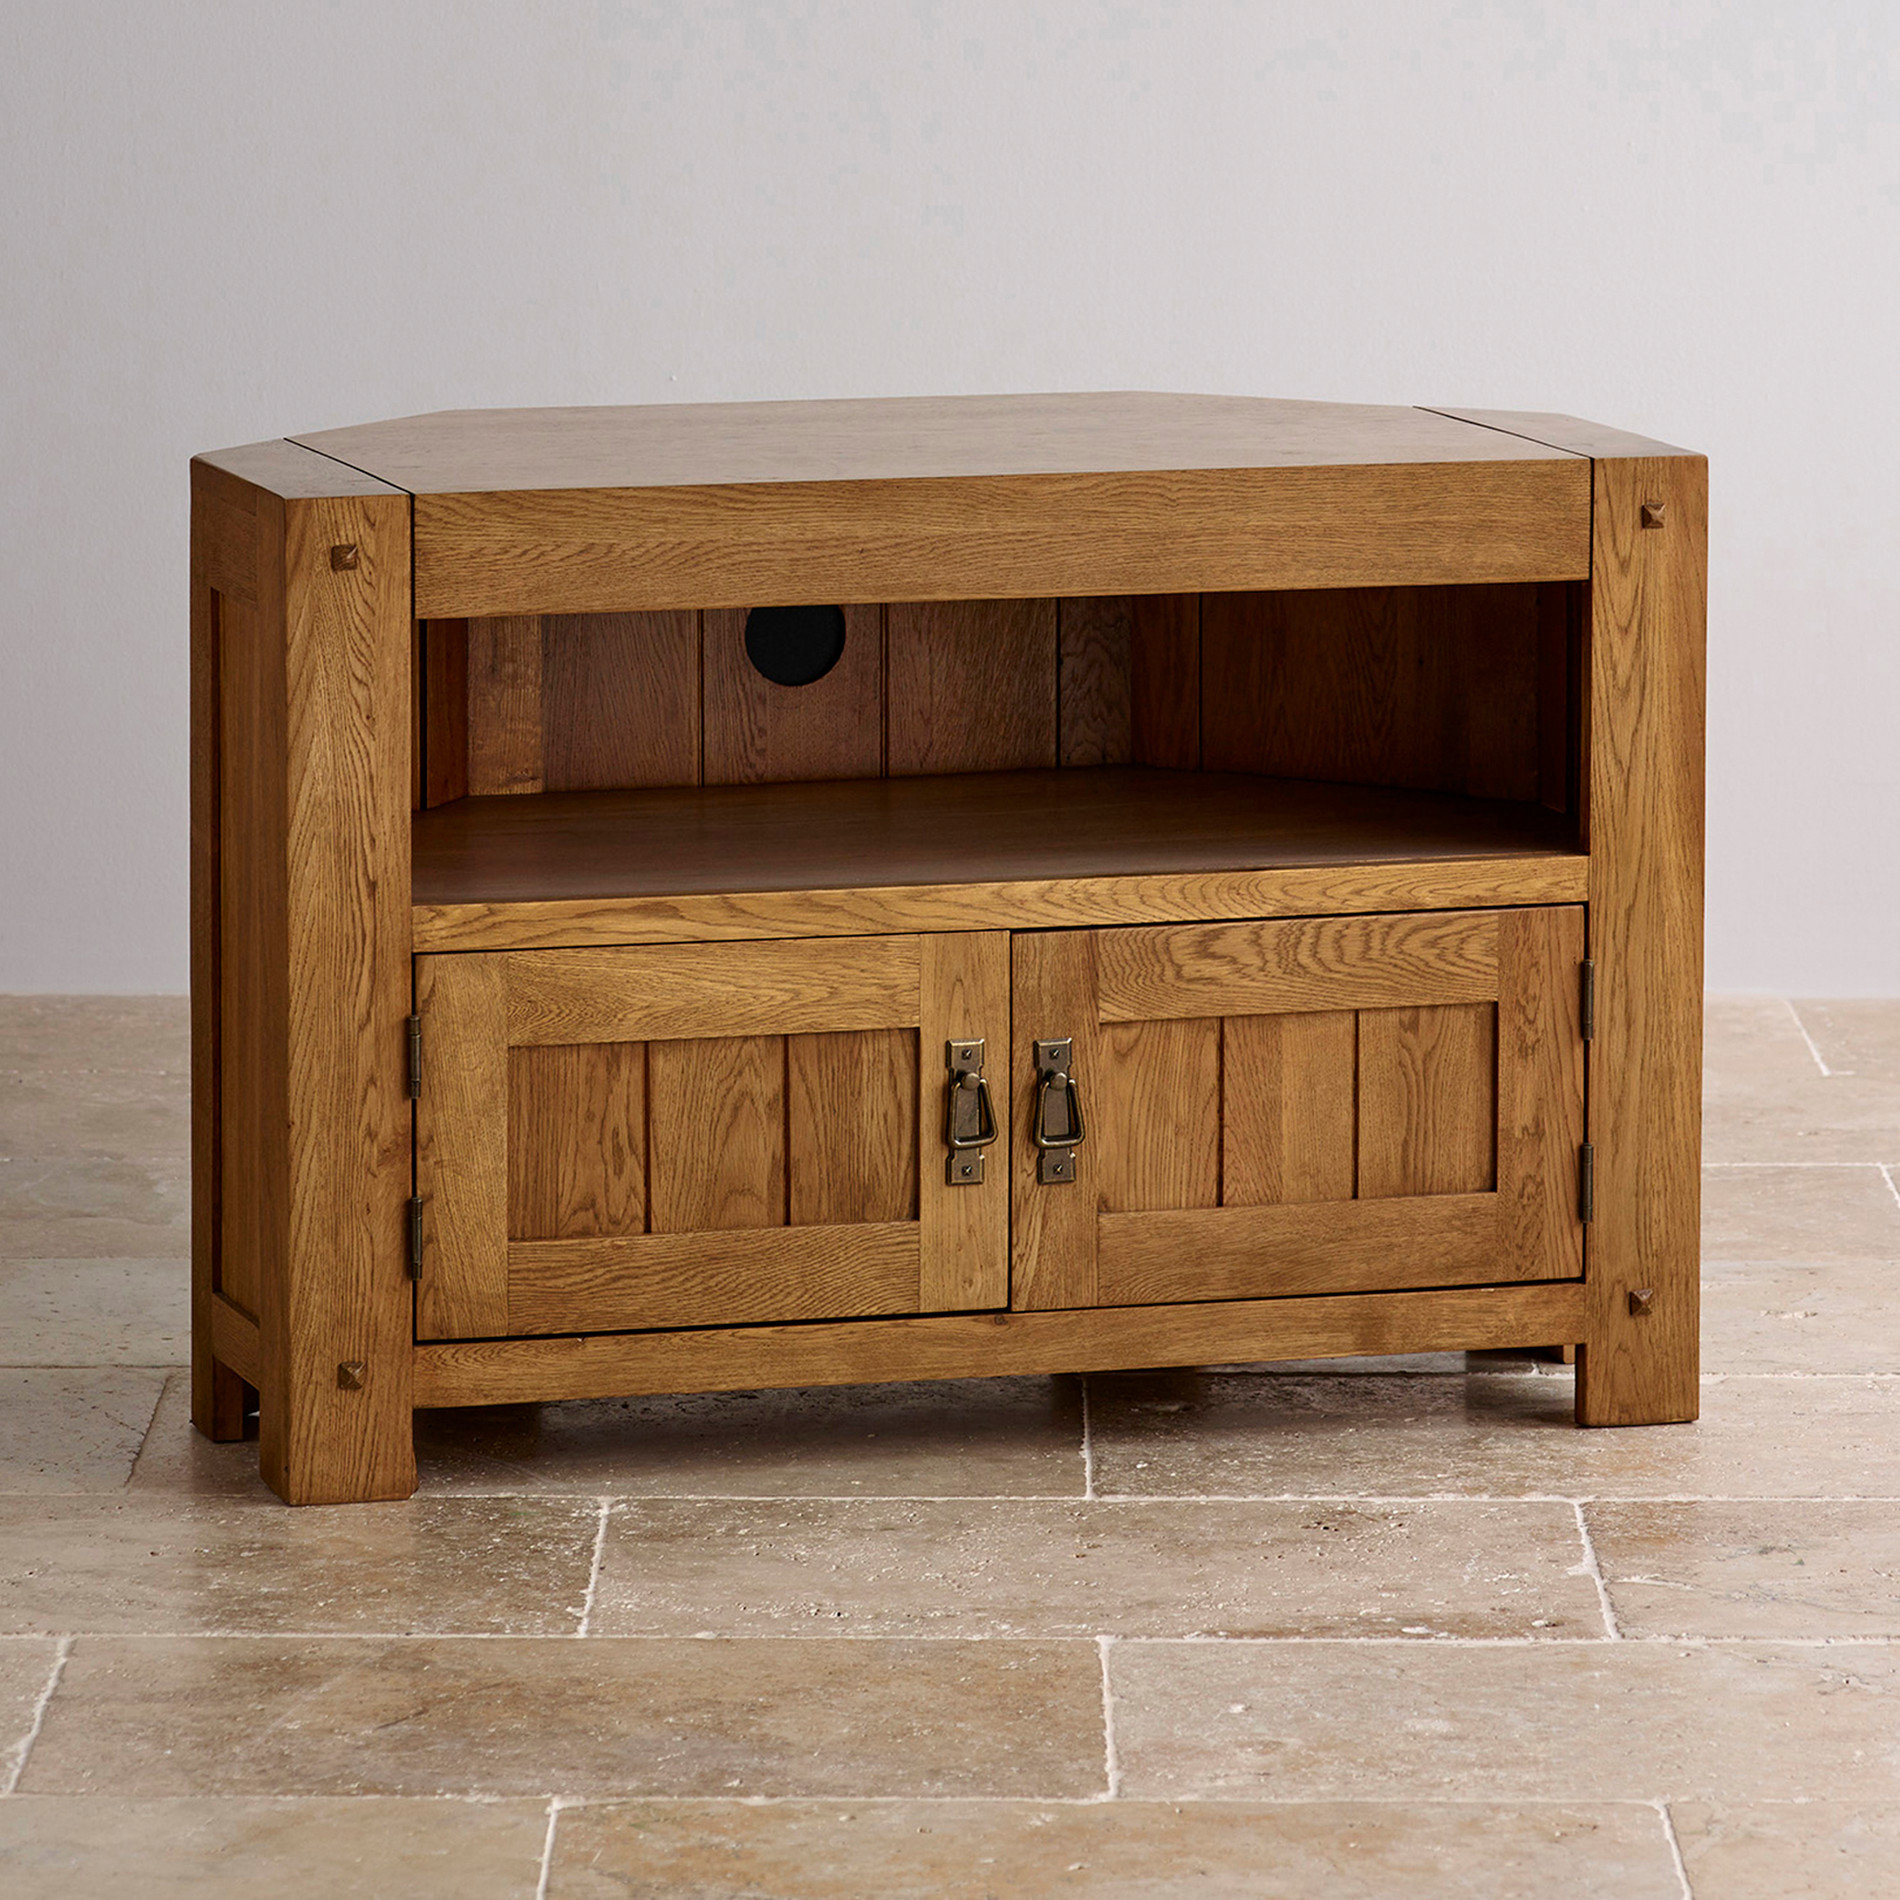 Quercus Corner TV Cabinet in Rustic Oak Oak Furniture Land : quercus rustic solid oak corner tv cabinet 55e0947c452c3 from www.oakfurnitureland.co.uk size 1900 x 1900 jpeg 793kB